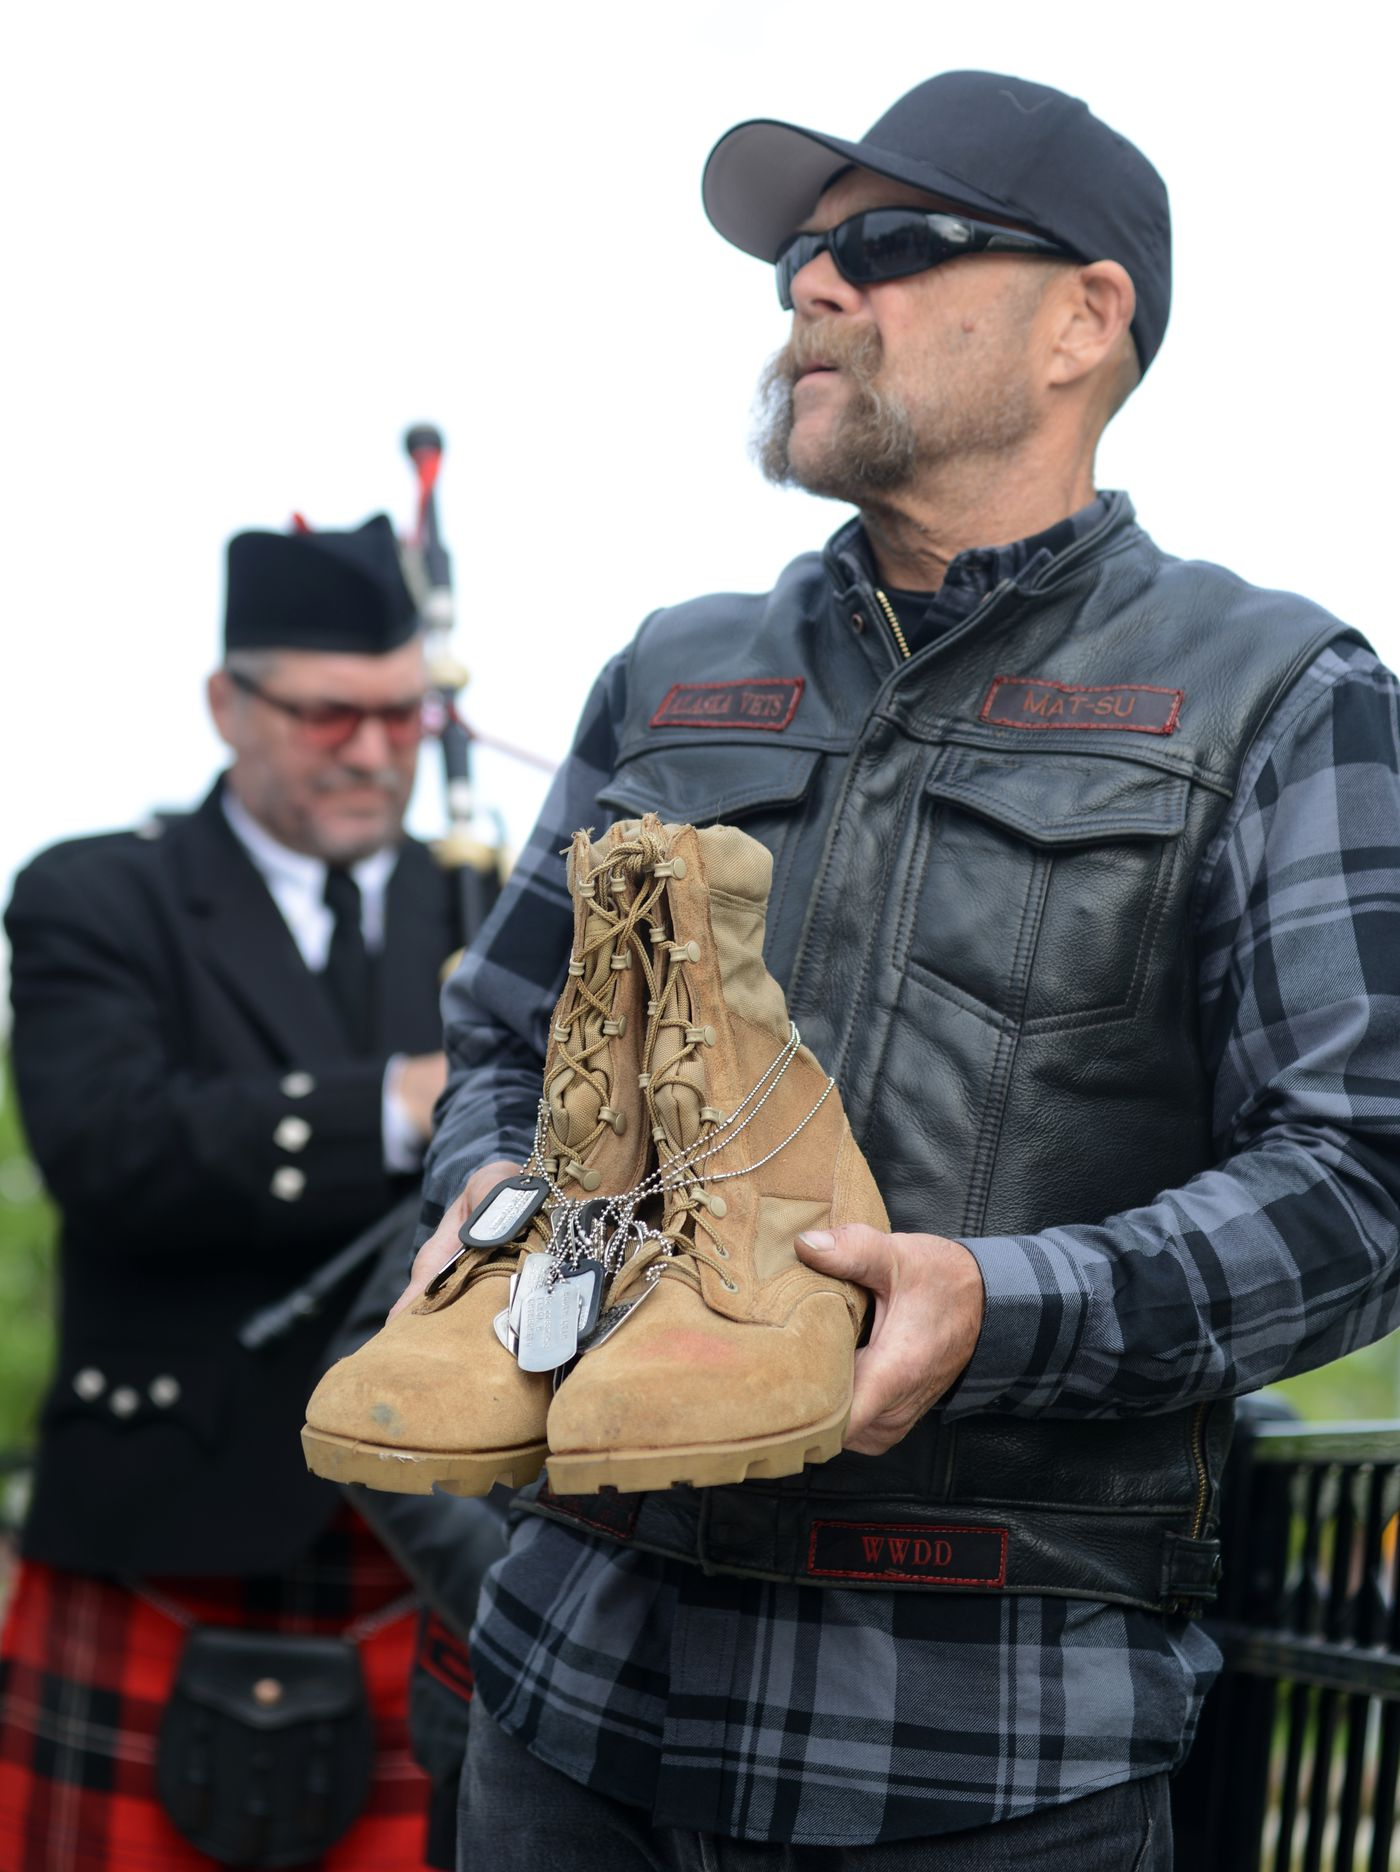 Navy veteran Sidestep, a member of the Alaska Vets Motorcycle Club, prepares to bring the boots forward for the Fallen Warrior ceremony during the Memorial Day remembrance on the Park Strip. Pipe Major Ian White, of the Crow Creek Pipes waits to play Amazing Grace for the fallen warrior. (Anne Raup / ADN)